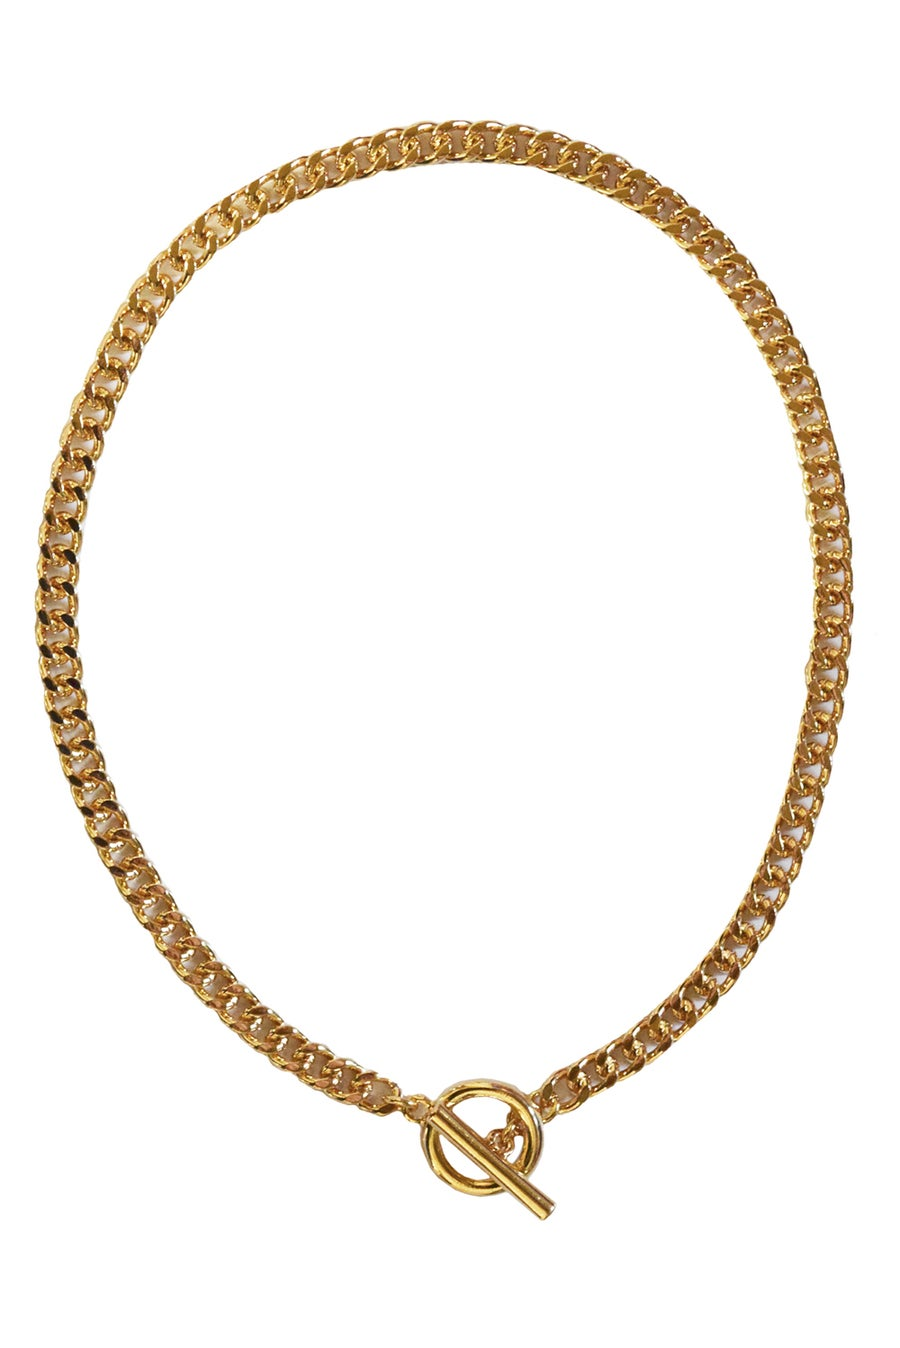 Image of Leah necklace